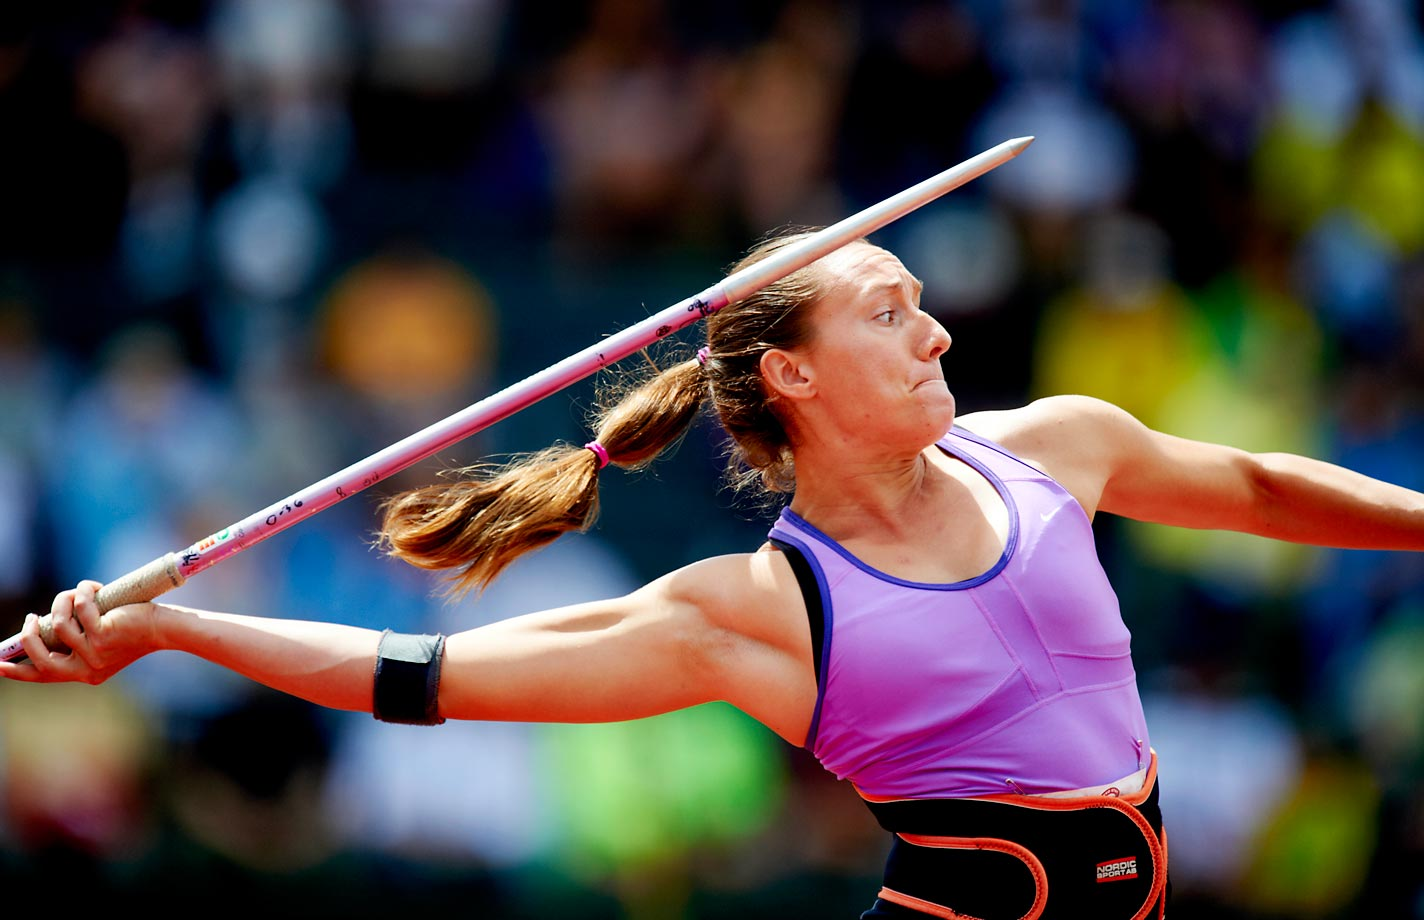 Amy Backel throws the javelin at the 2012 U.S. Olympic Trials.